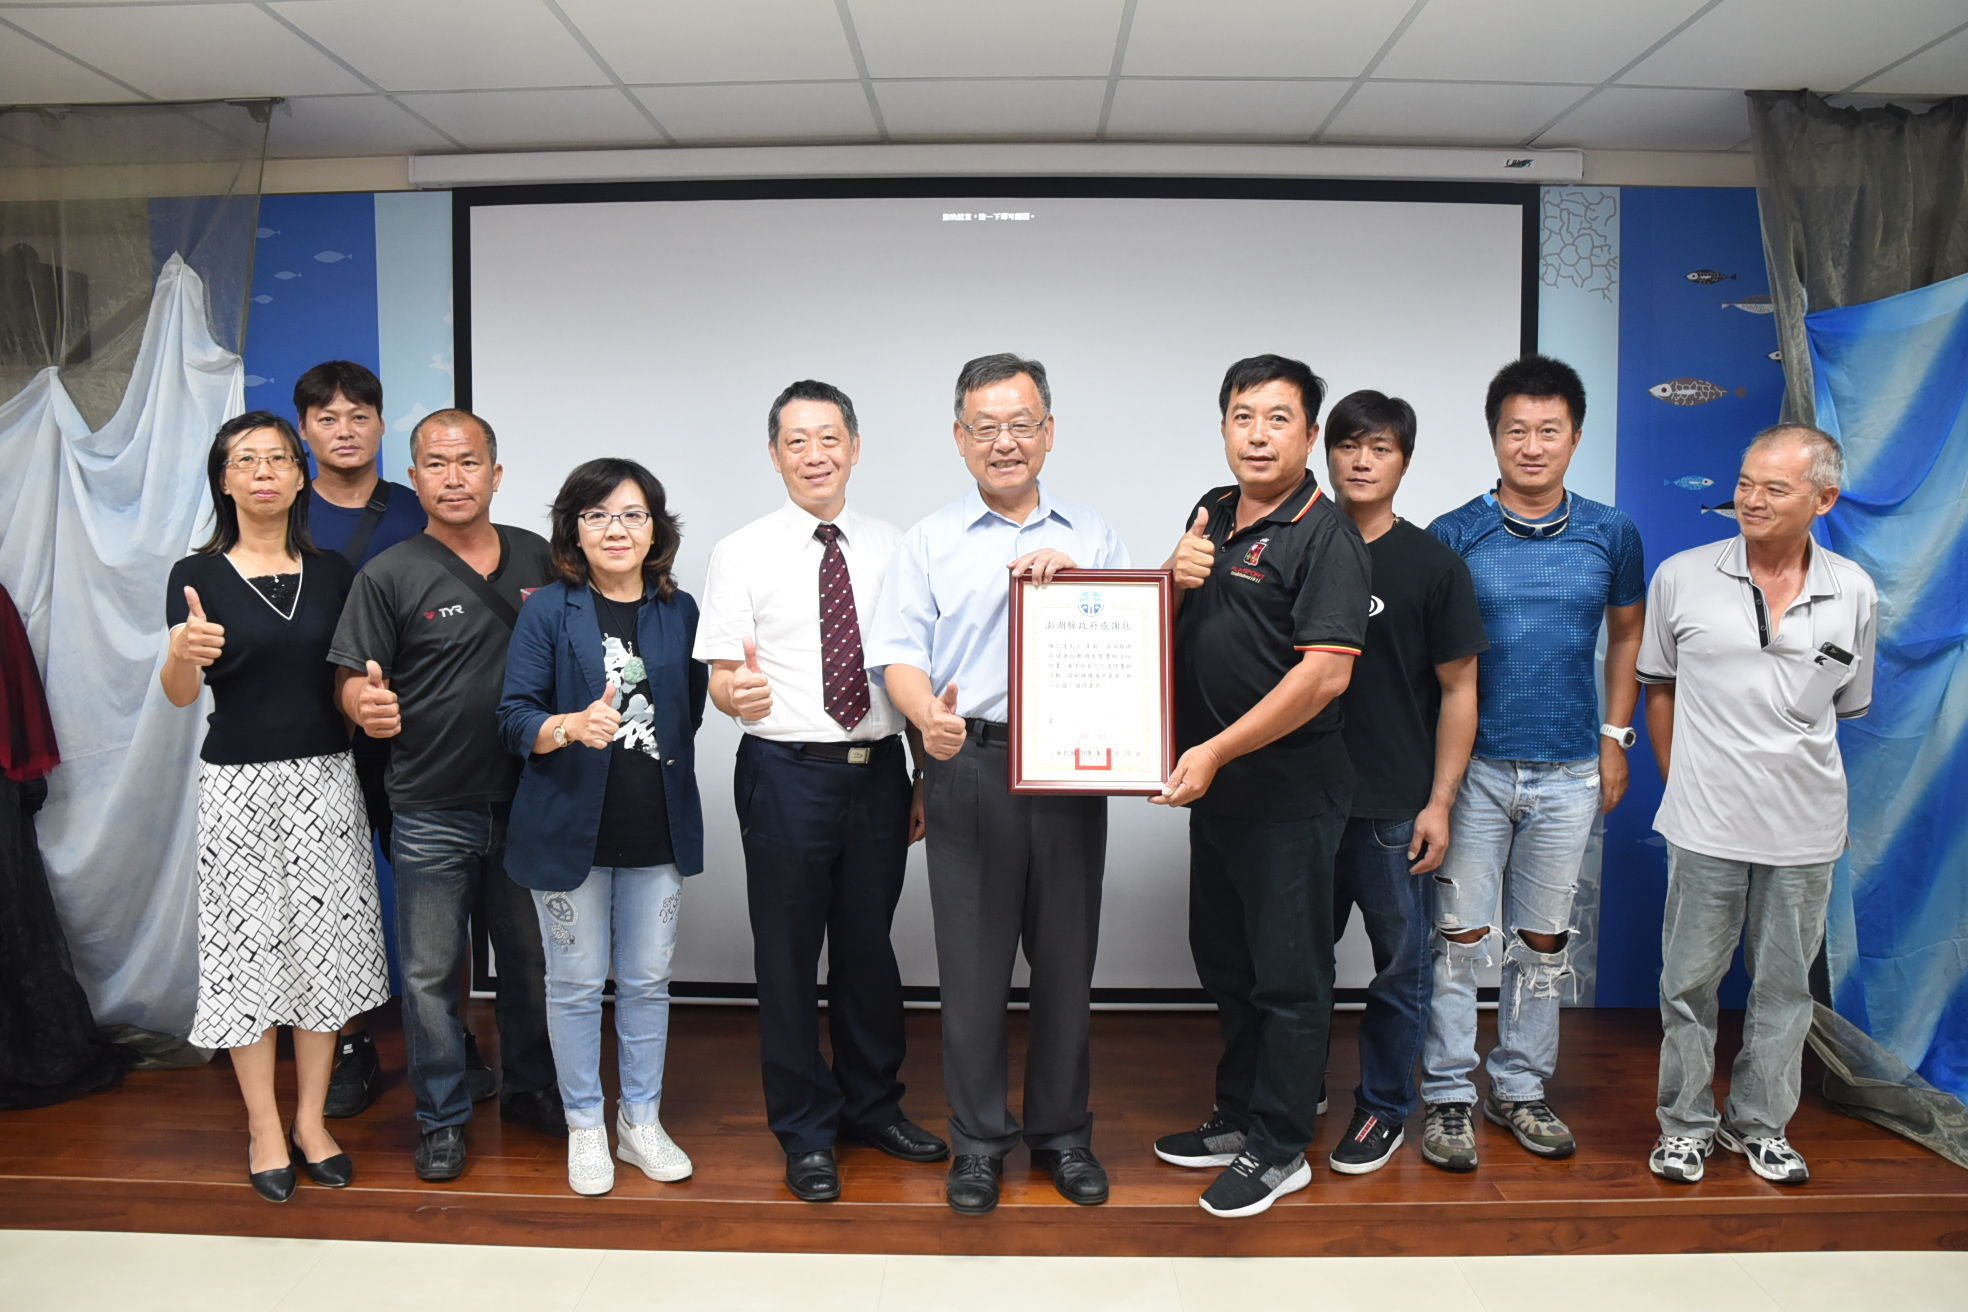 County Mayor Lai presented the Certificate of Gratitude